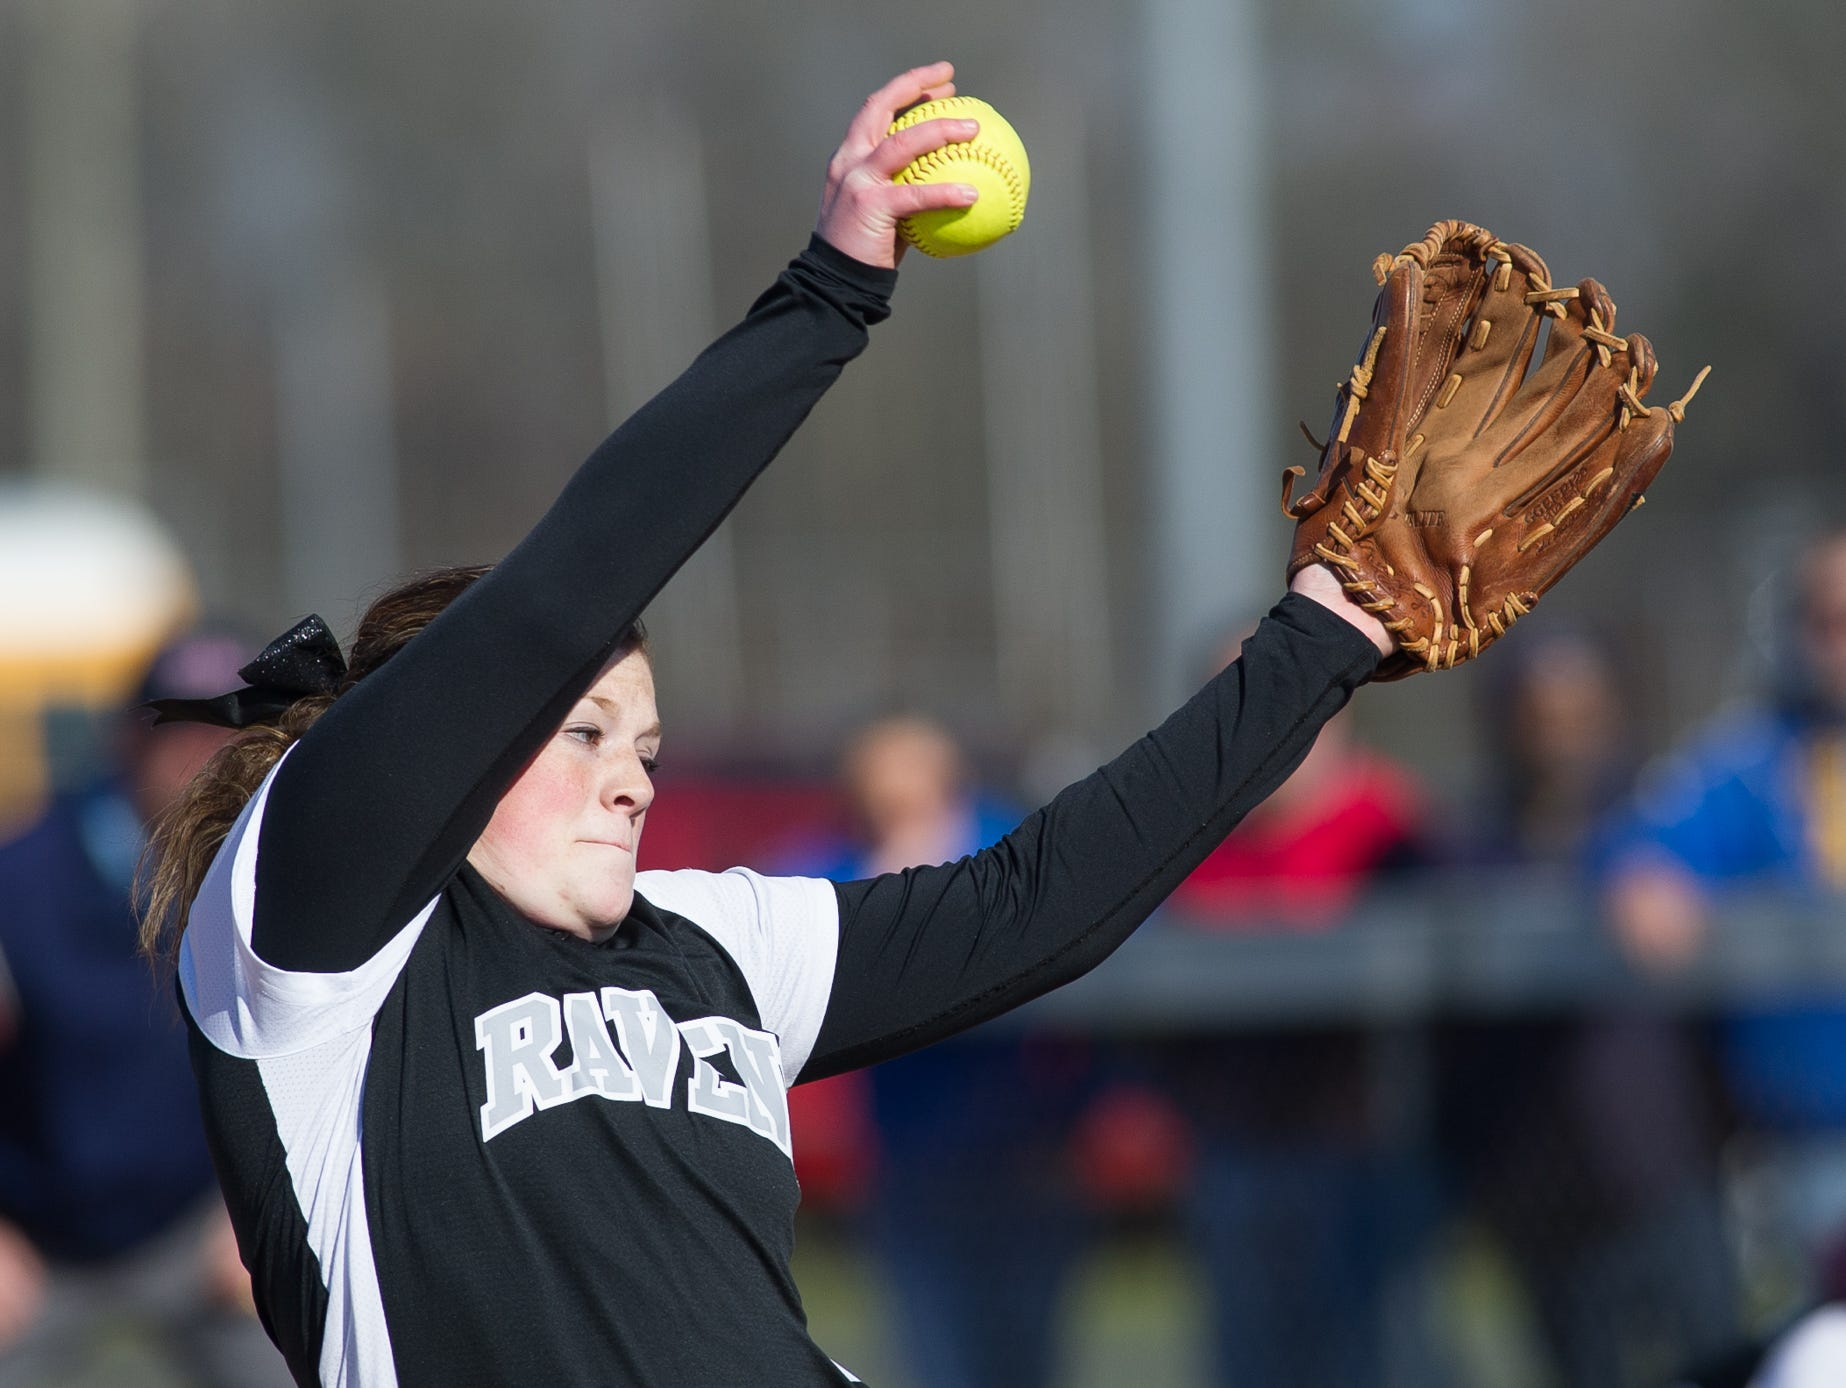 Sussex Tech's pitcher Sarah James (10) pitches in the first inning against Sussex Central.